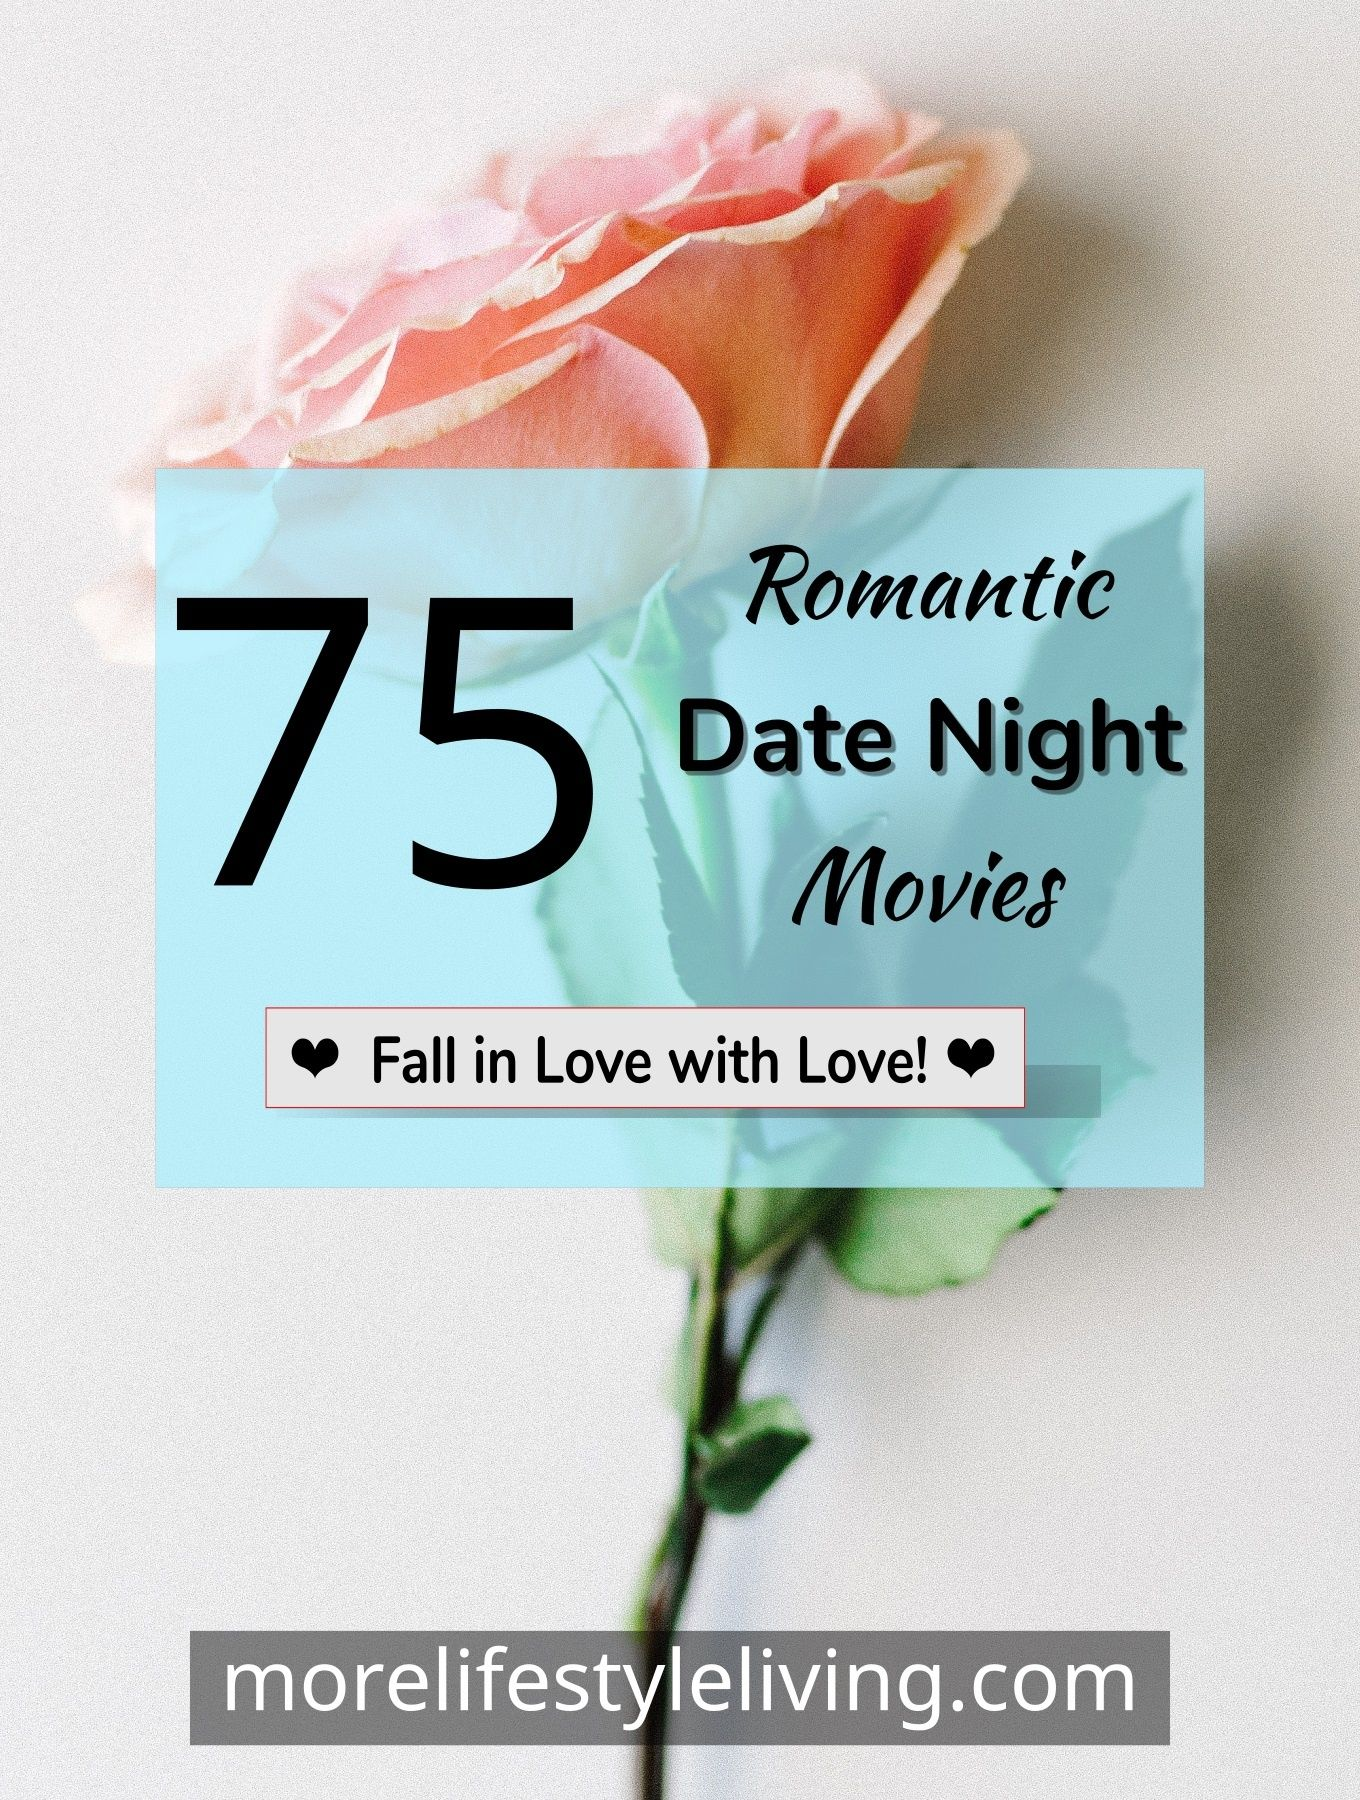 These 75 romantic movies are good movies to watch for date night.  This movie guide has a list of the best romantic movies to watch for a date night with your hun! Rom-Coms Romantic Drama parodies animation Disney princess stories musicals and more. These love movies are fun and some are guaranteed to make you cry! How many romance movies to watch have you seen on this list? These movies will touch your heart and make you fall in love with LOVE.  #love #morelifestyleliving